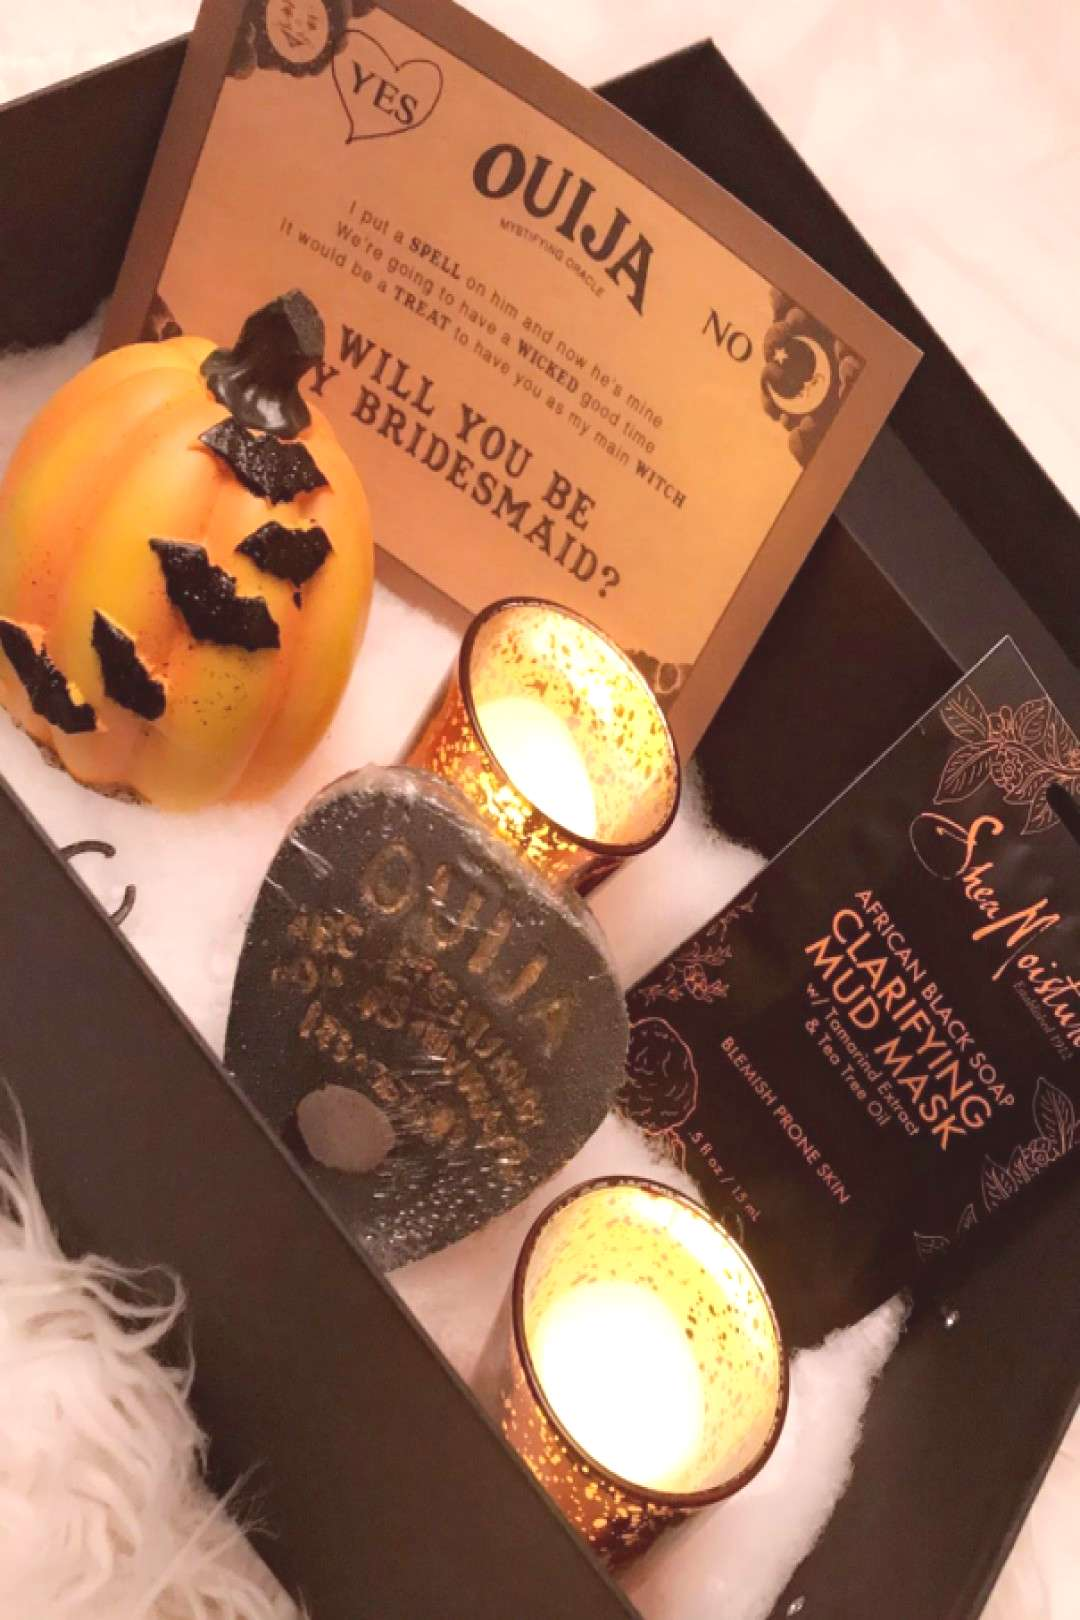 A Halloween Bridesmaid Proposal! So unique! @luckylibraleigh is sharing all the details of how she